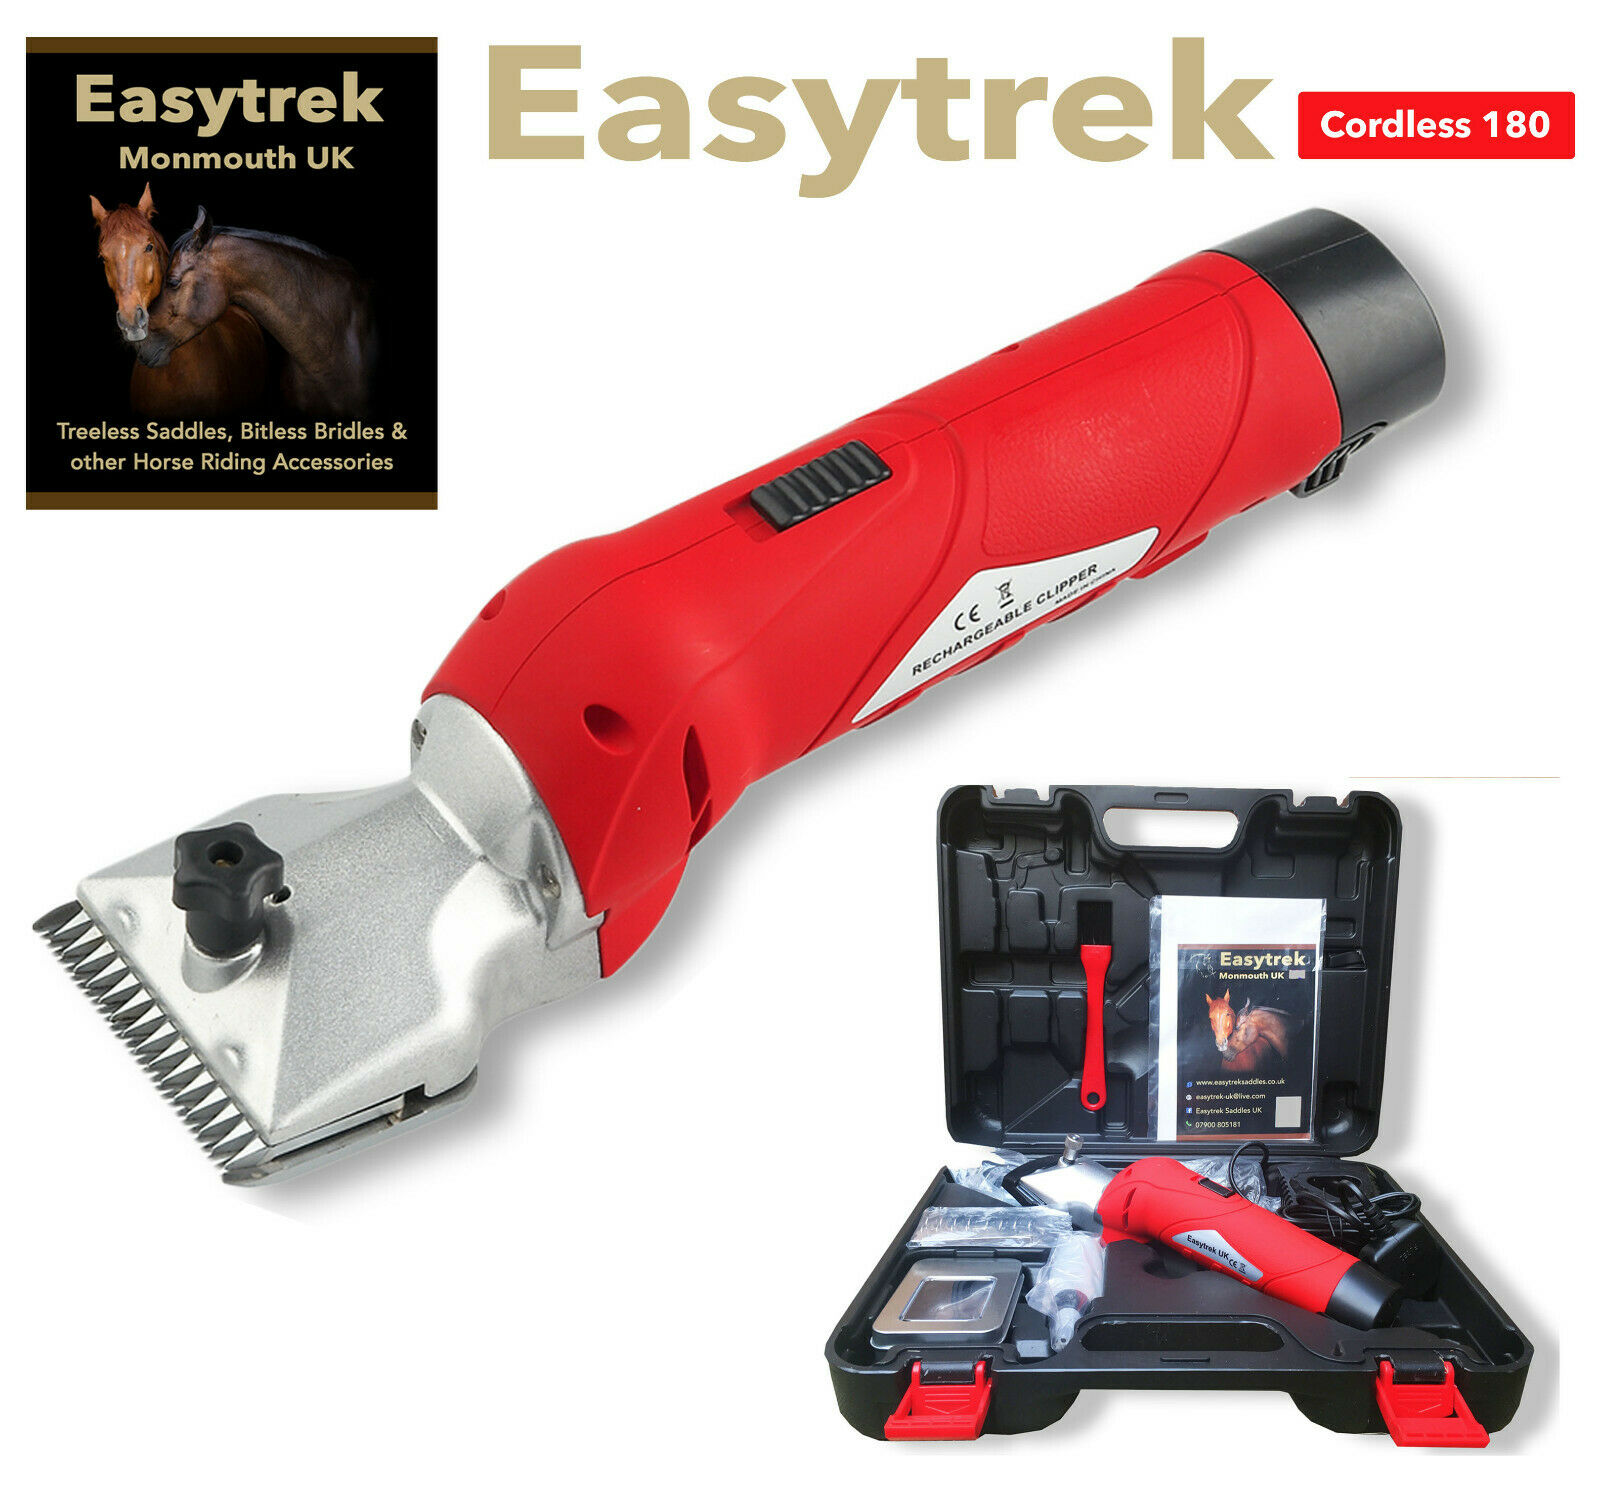 Cordless horse clippers trimmers grooming powerful quiet 1 year warranty 2 blade